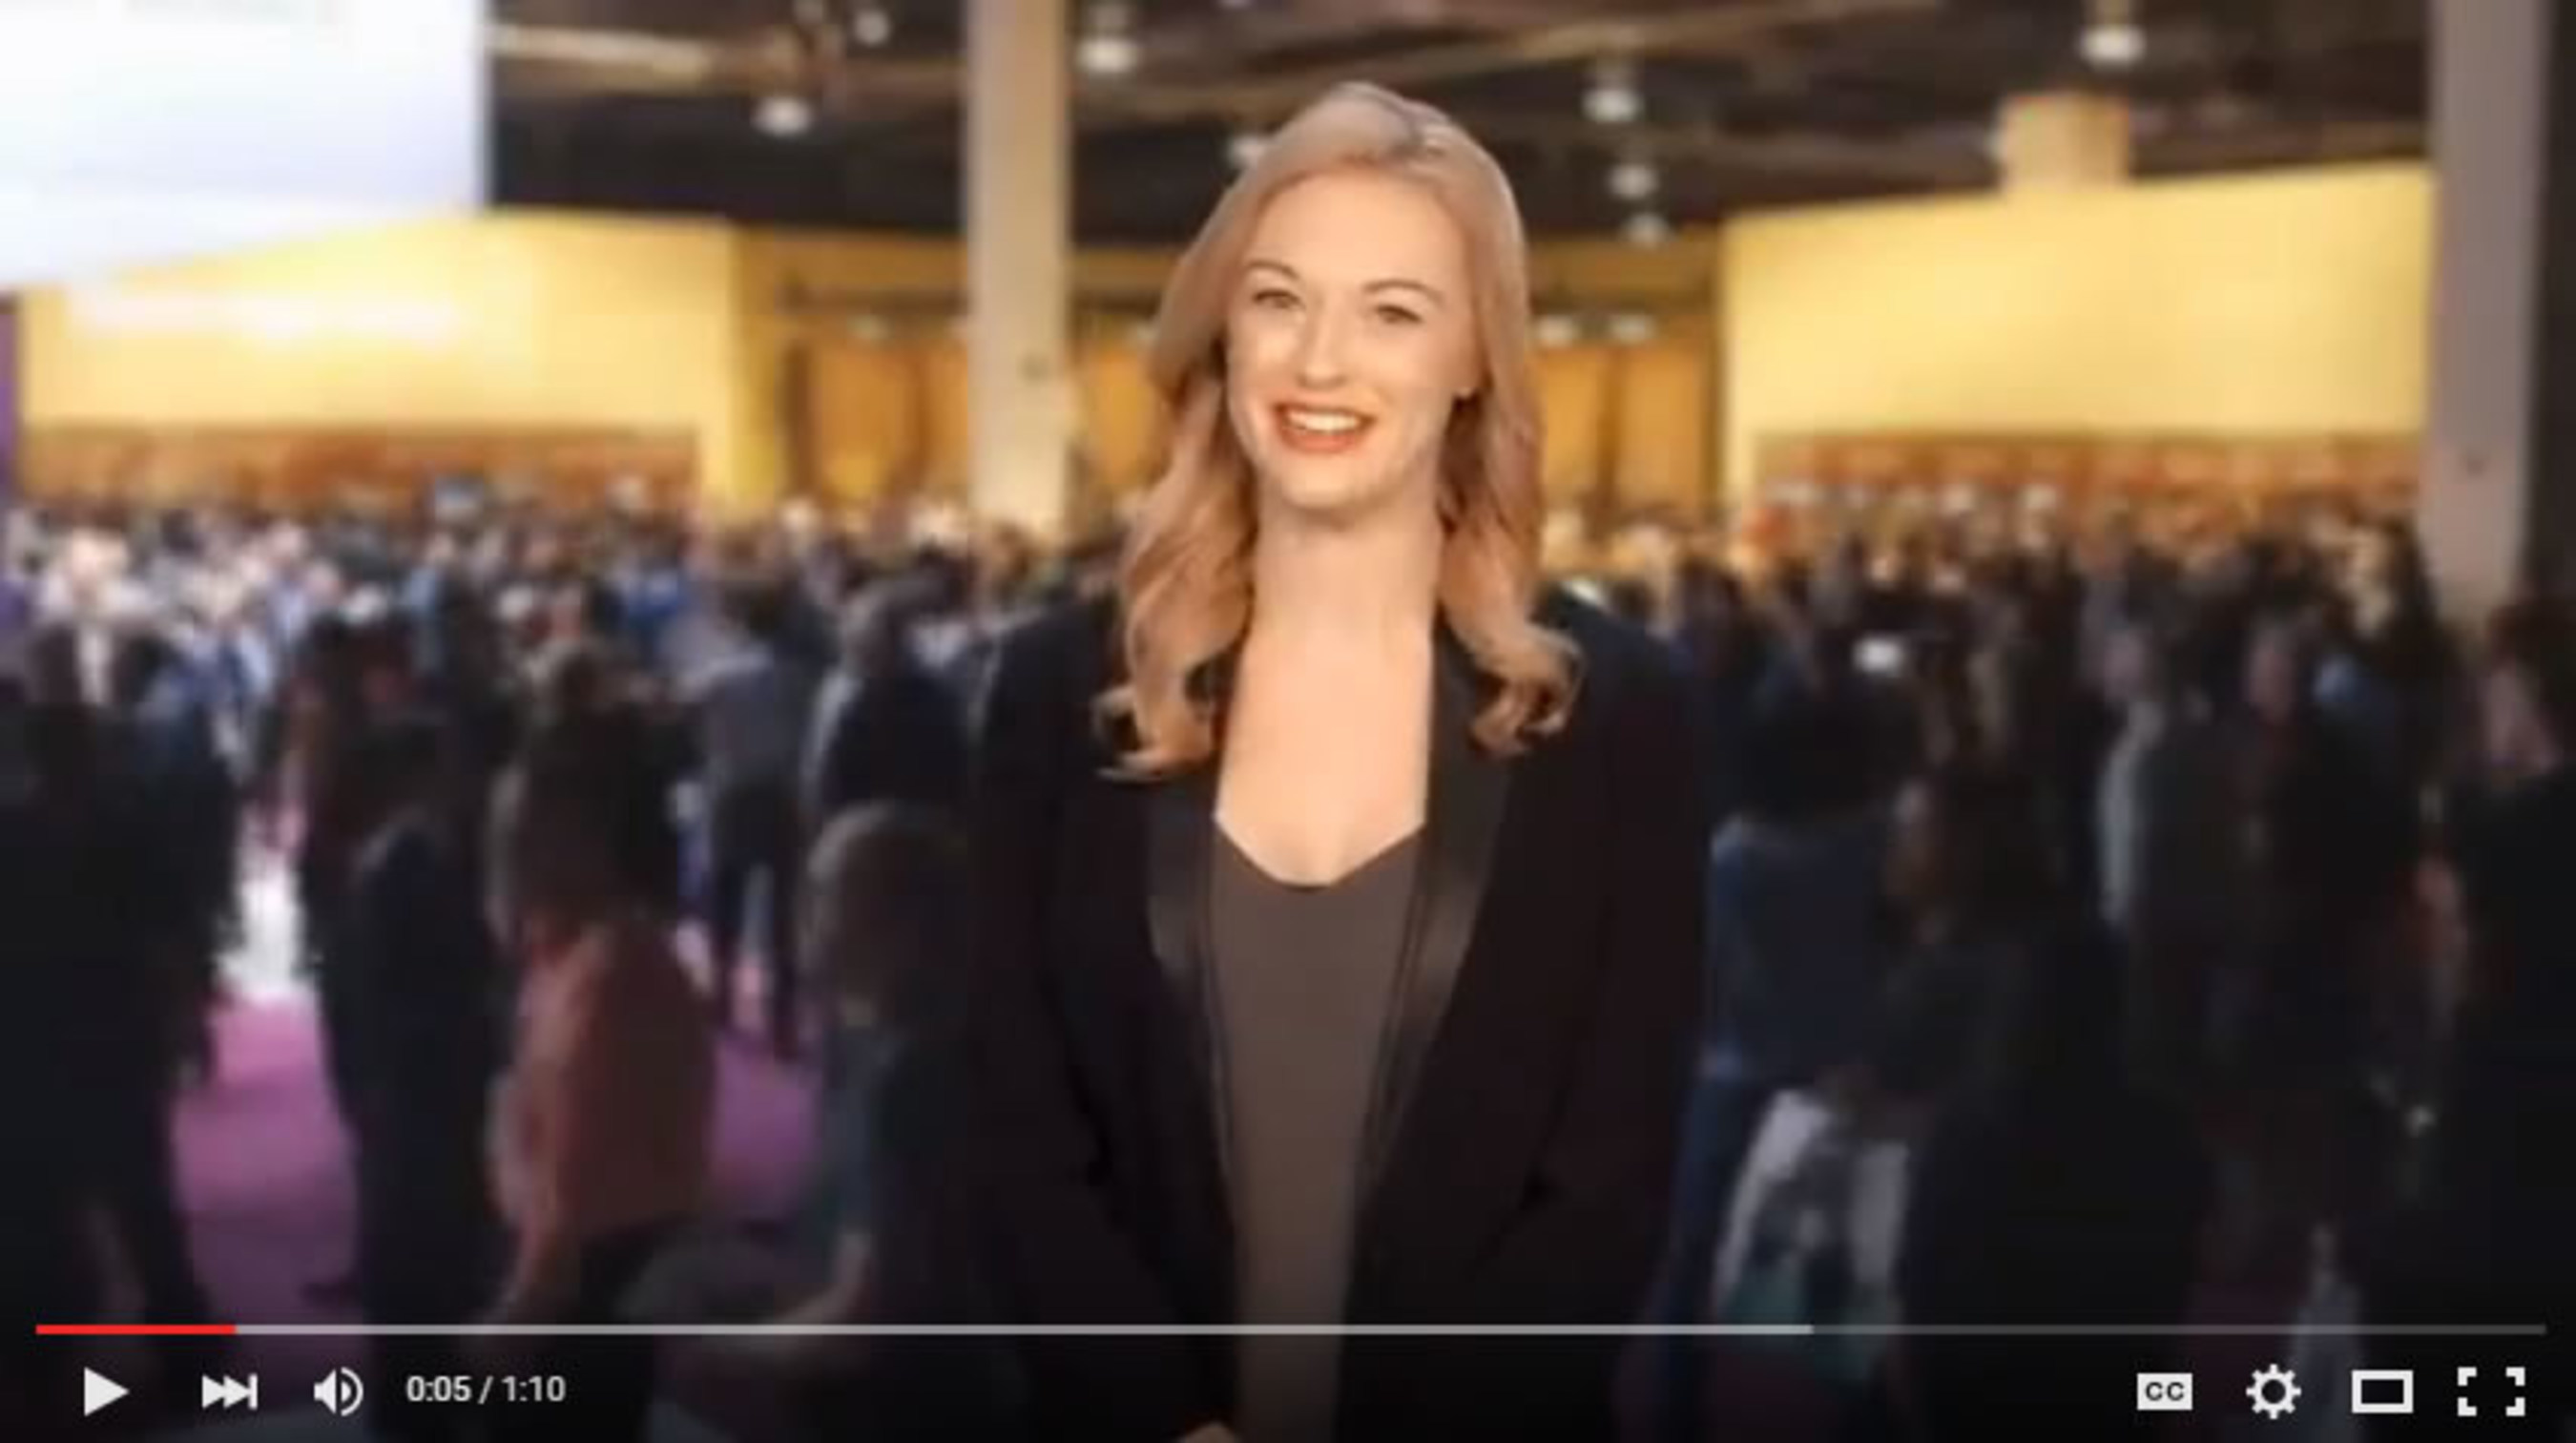 NAB Show Chooses Idomoo to Create Personalized Video Invite for Attendees